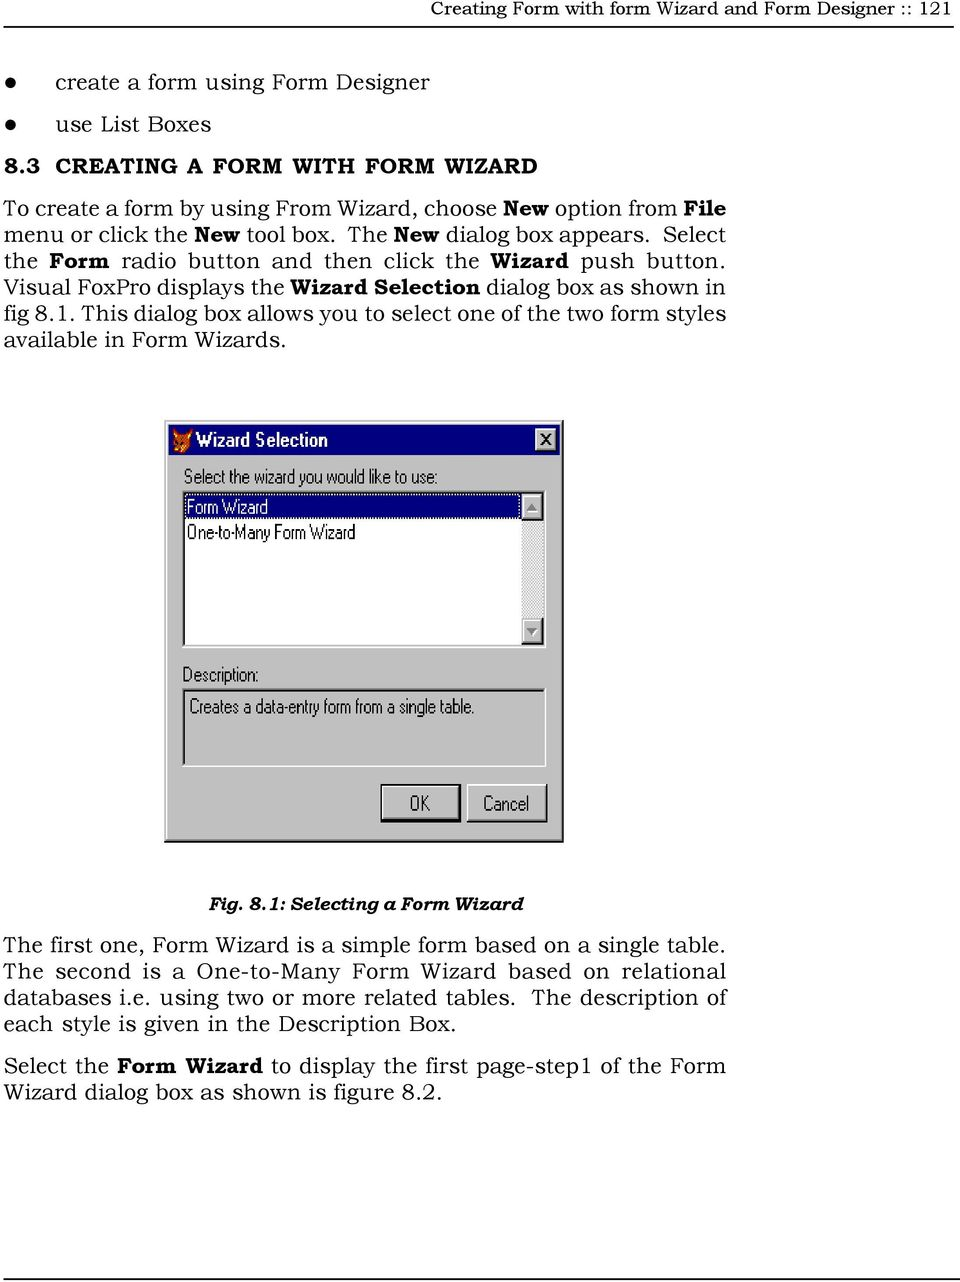 Select the Form radio button and then click the Wizard push button. Visual FoxPro displays the Wizard Selection dialog box as shown in fig 8.1.